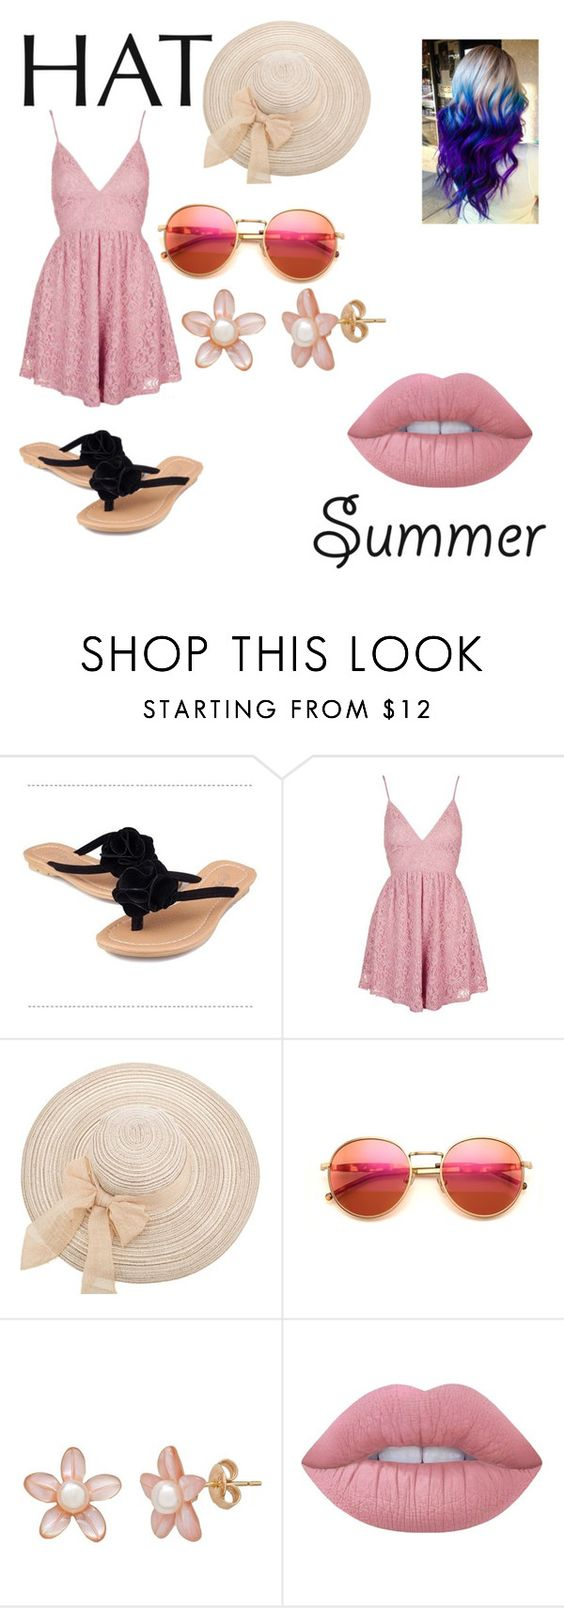 """""""Summer is coming"""" by nailahasti ❤ liked on Polyvore featuring Topshop, Wildfox, Lime Crime and summerhat"""